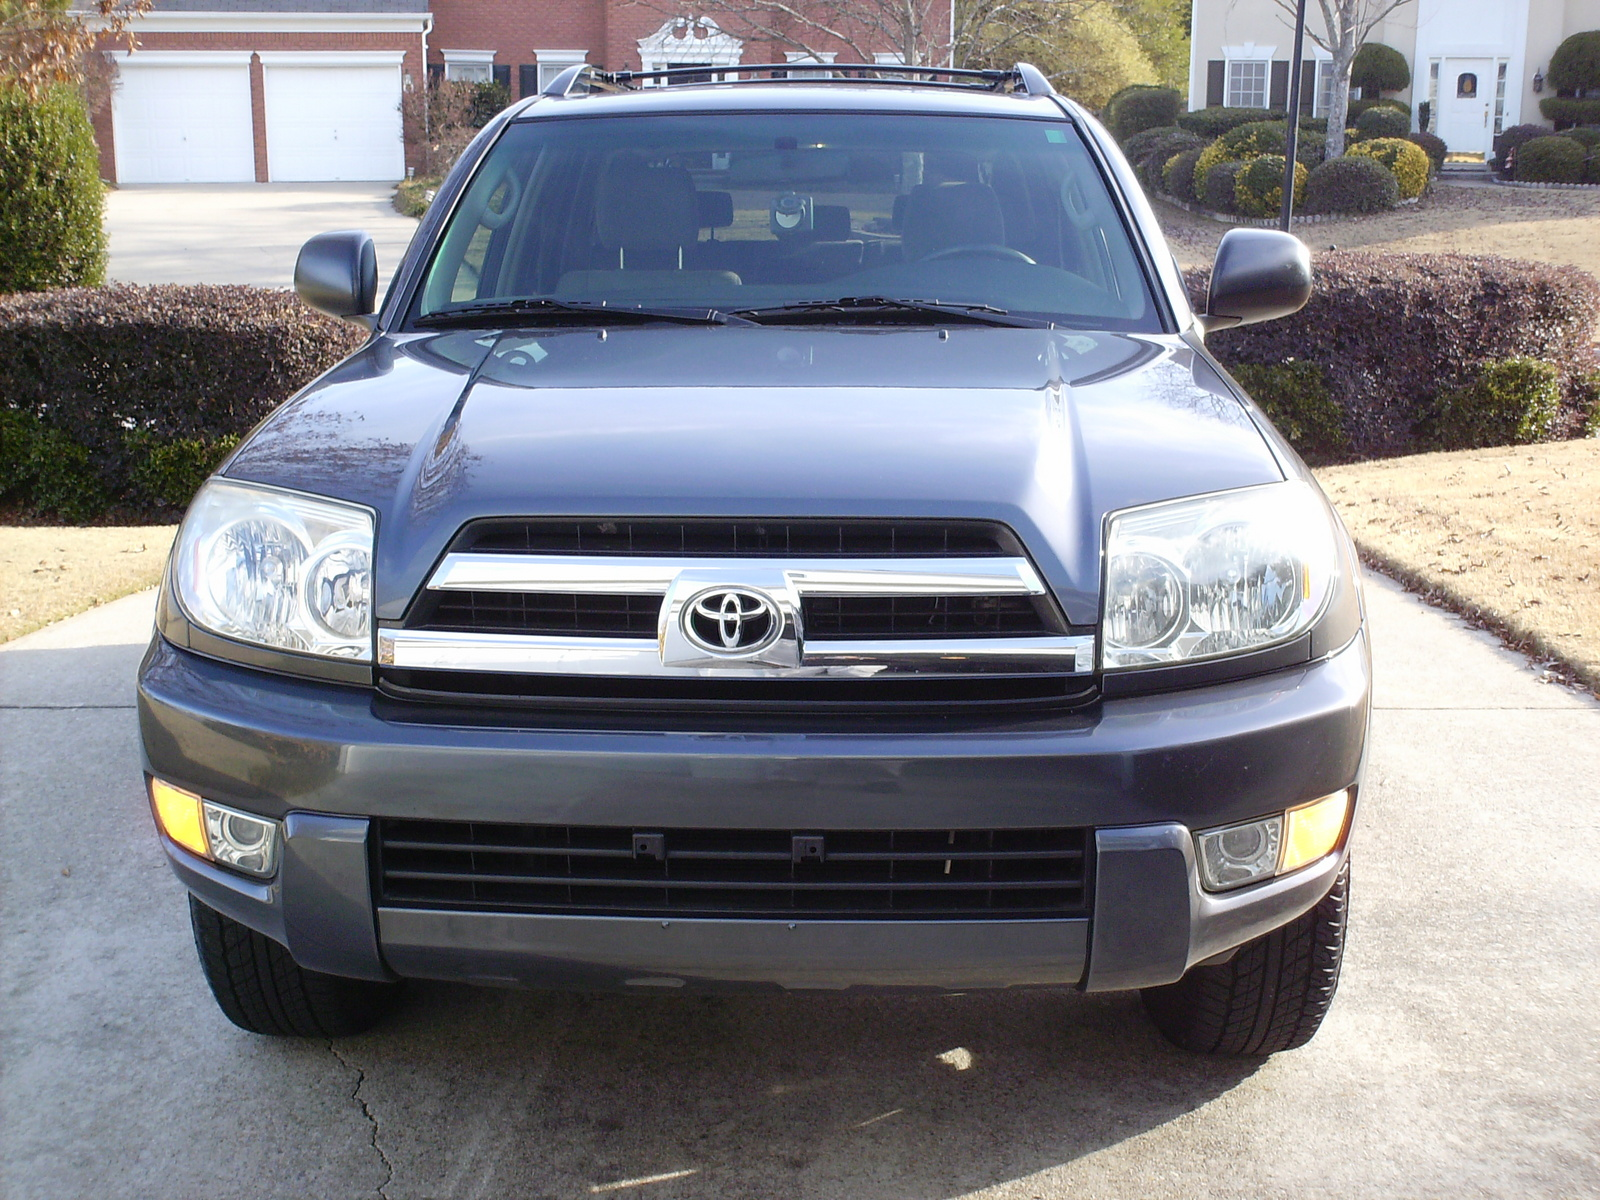 toyota 4runner repair problems cost and autos weblog. Black Bedroom Furniture Sets. Home Design Ideas